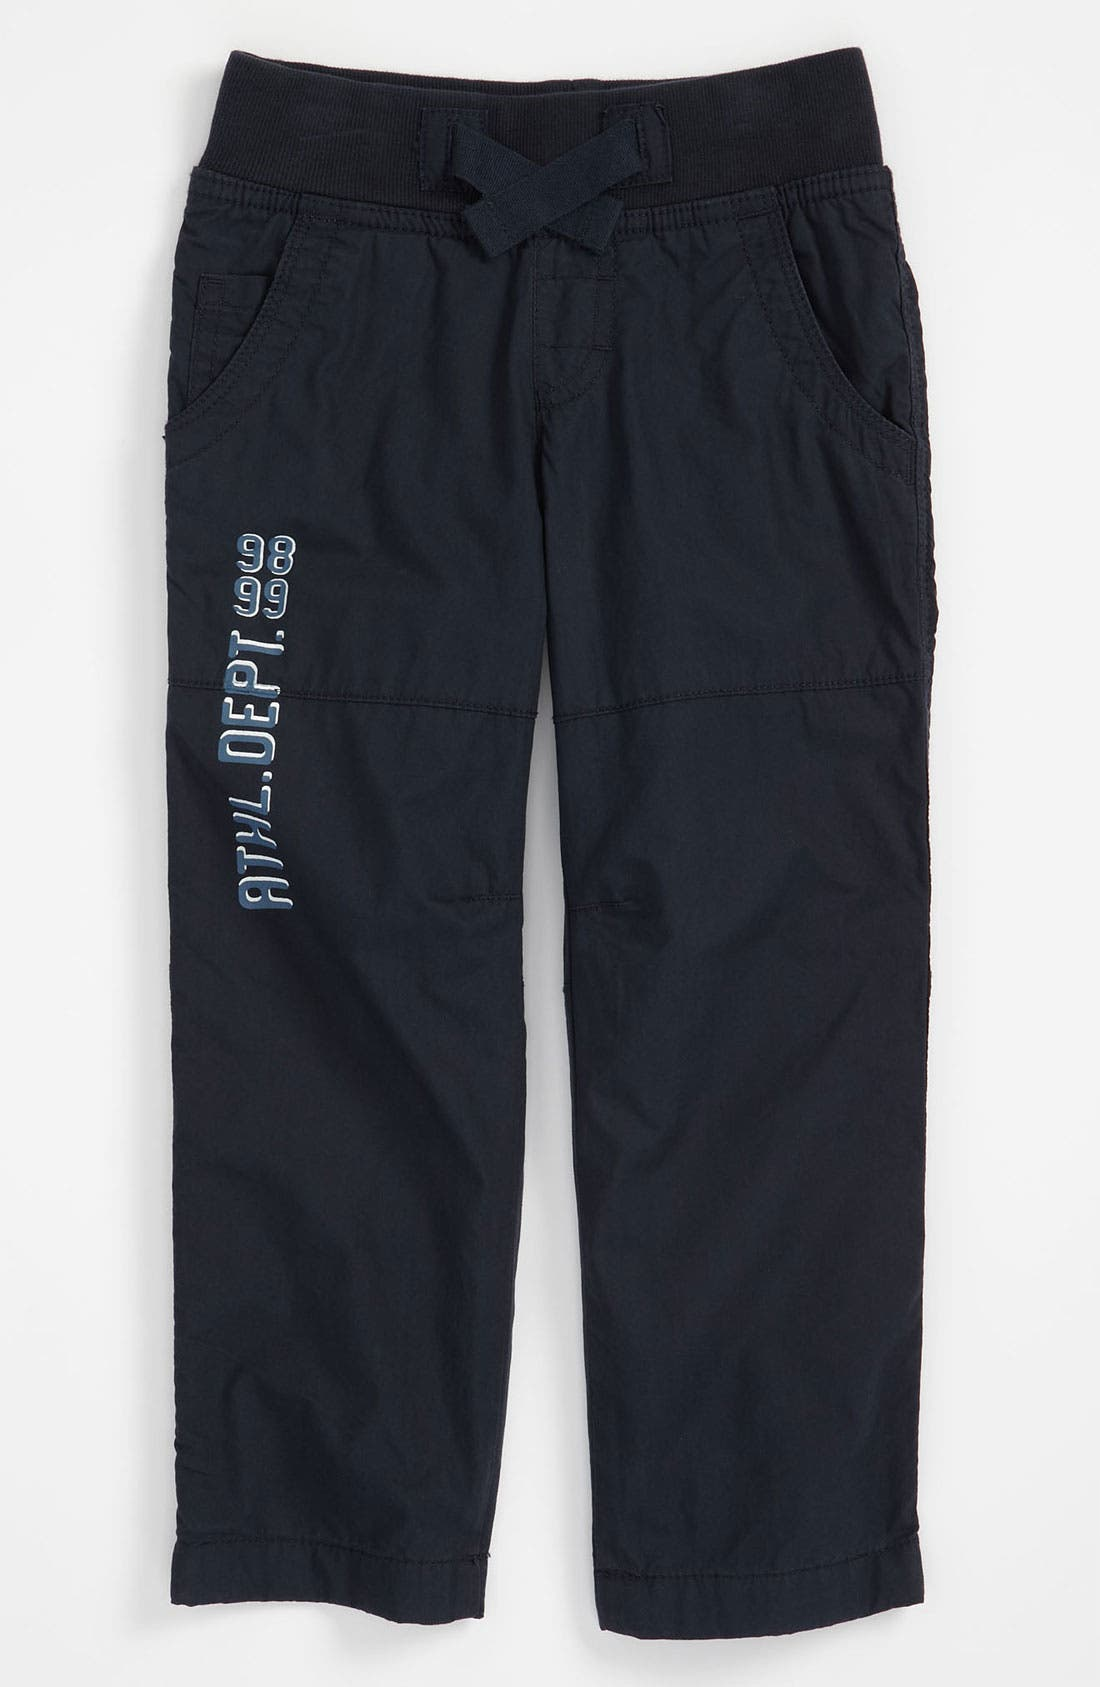 Main Image - United Colors of Benetton Kids 'Sport' Pants (Toddler)